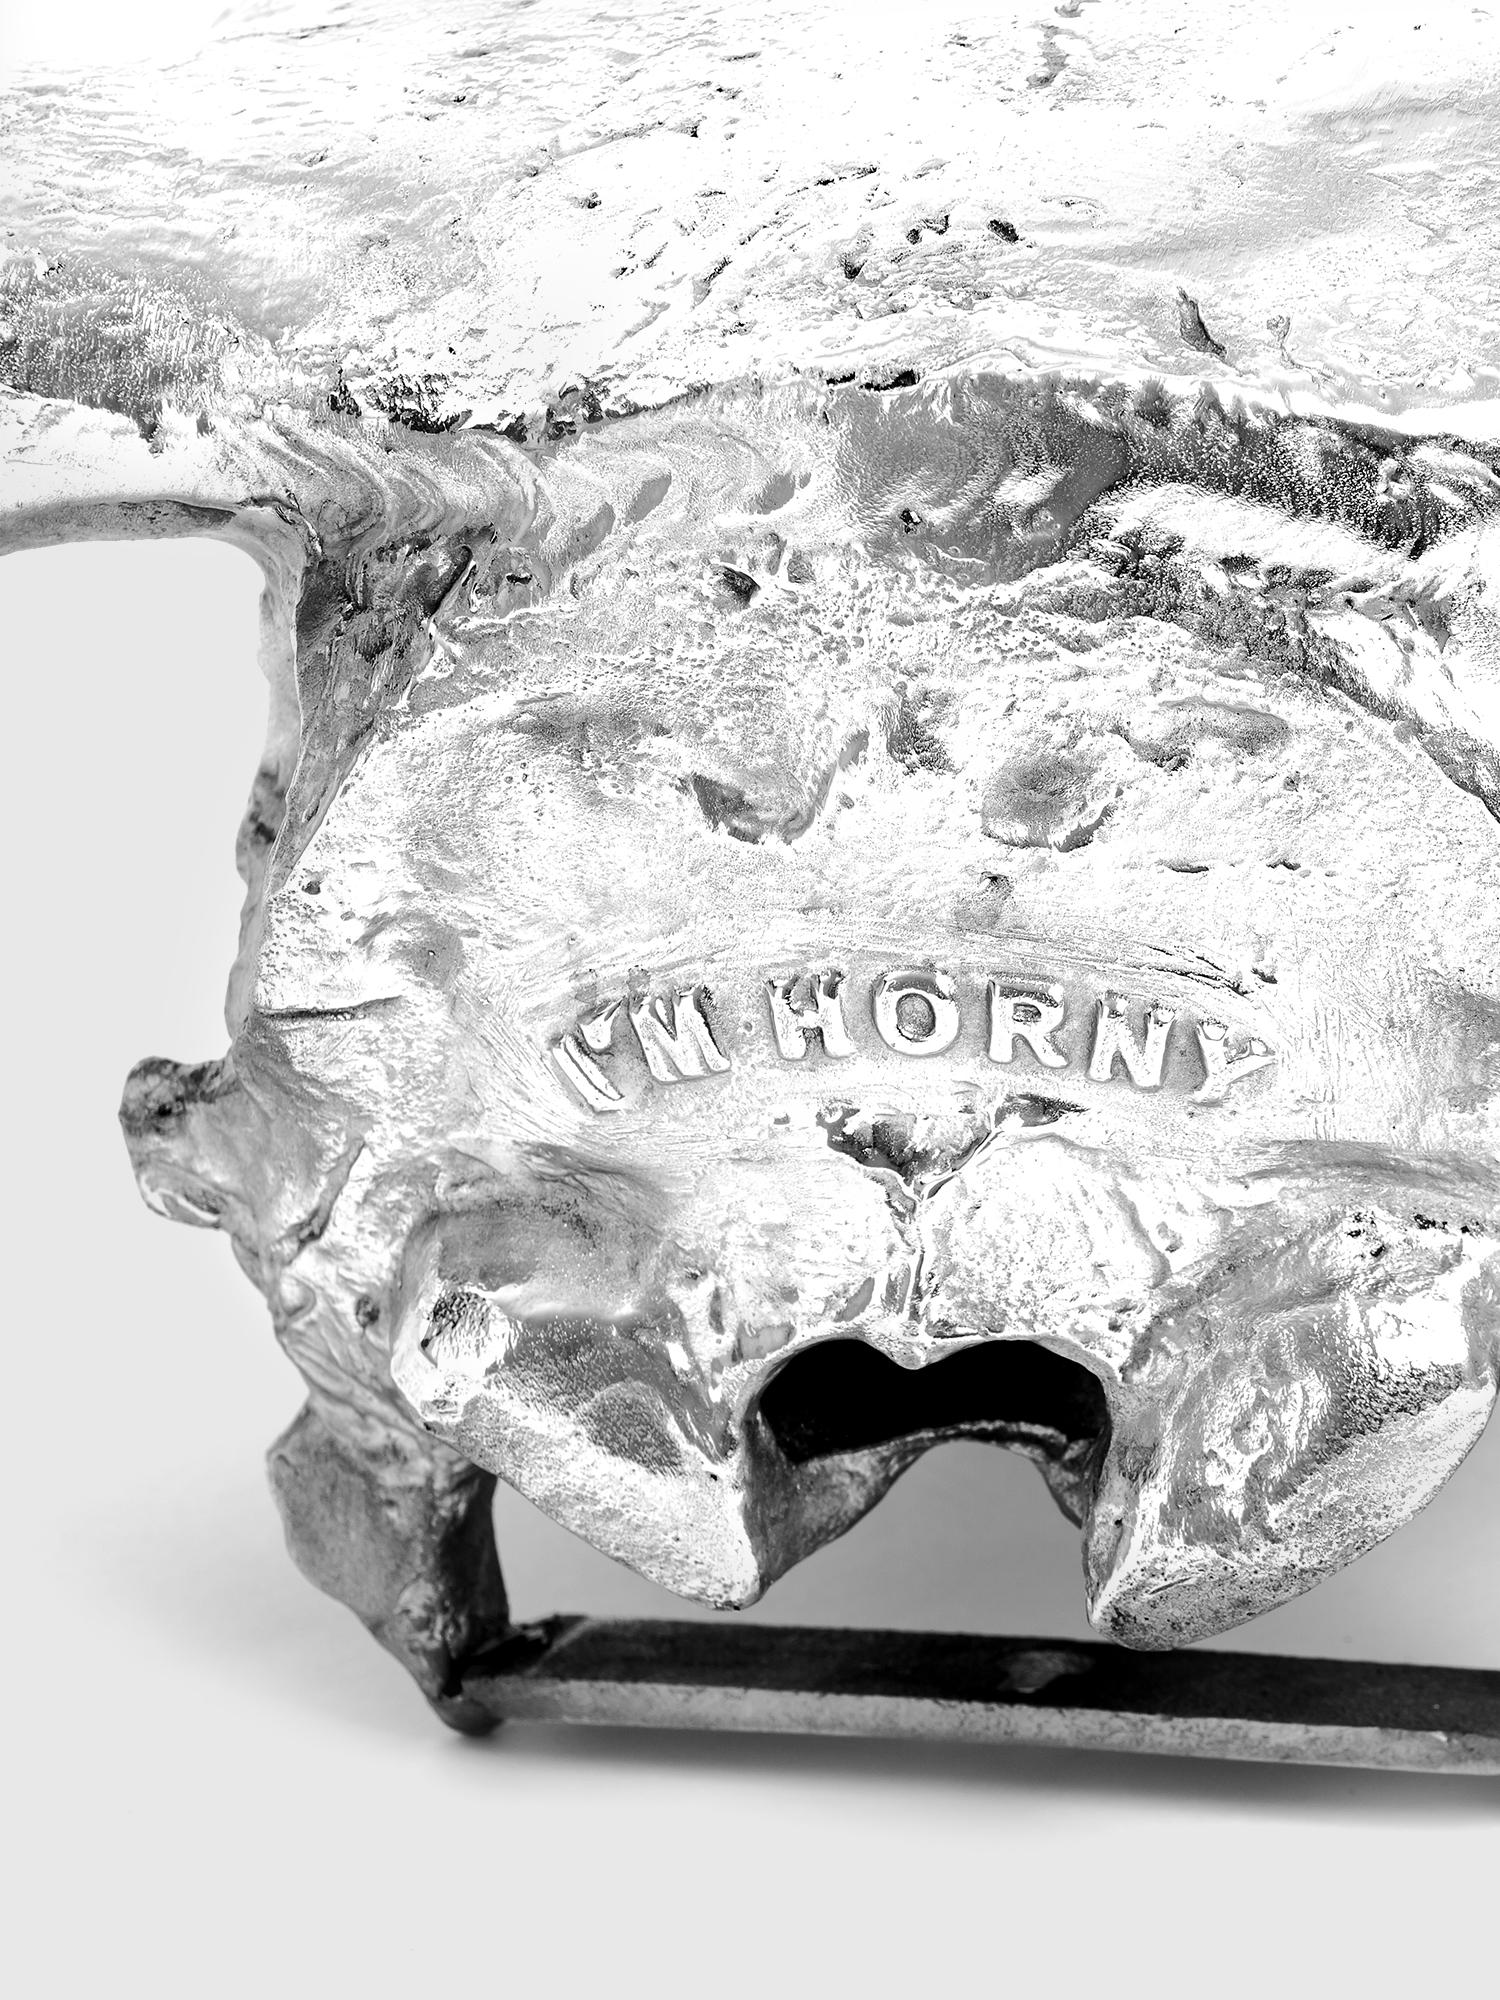 Diesel - 10899 WUNDERKAMMER,  - Home Accessories - Image 7